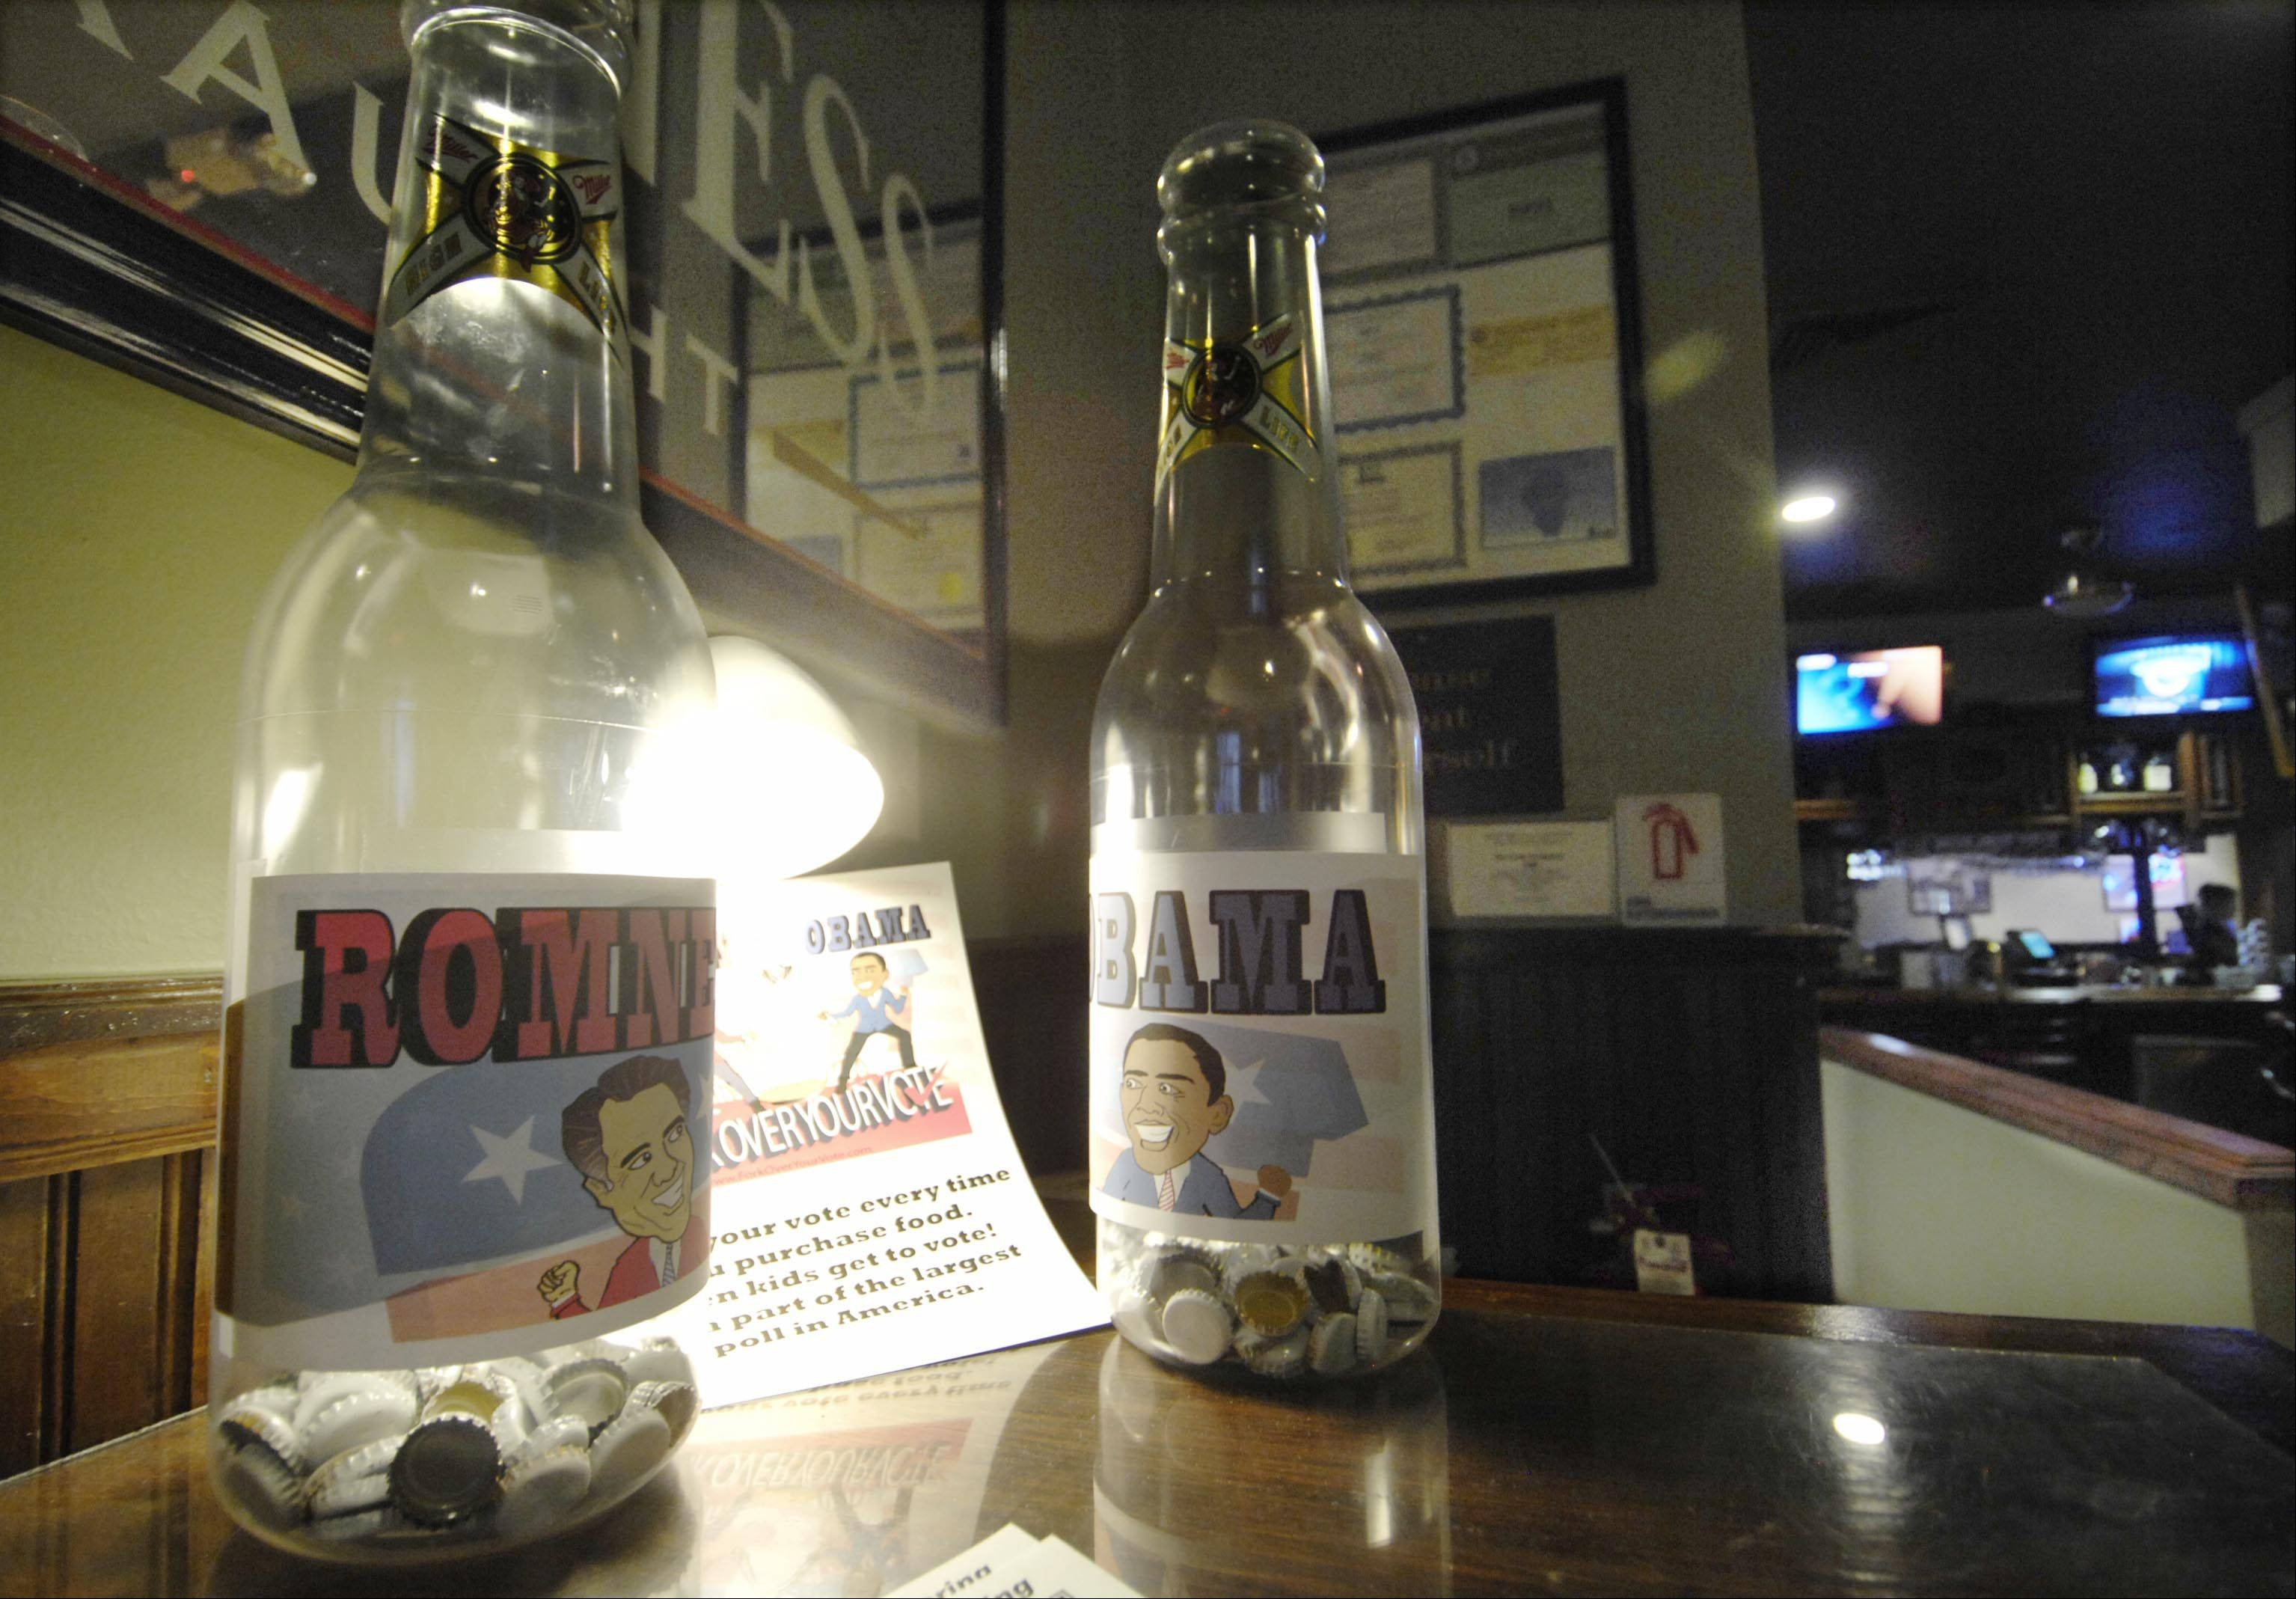 At Stanley's Ale House in South Elgin, patrons can drop a bottle cap into the oversized plastic bottle to vote for their presidential choice. Votes will be tallied with others across the country until Nov. 4.